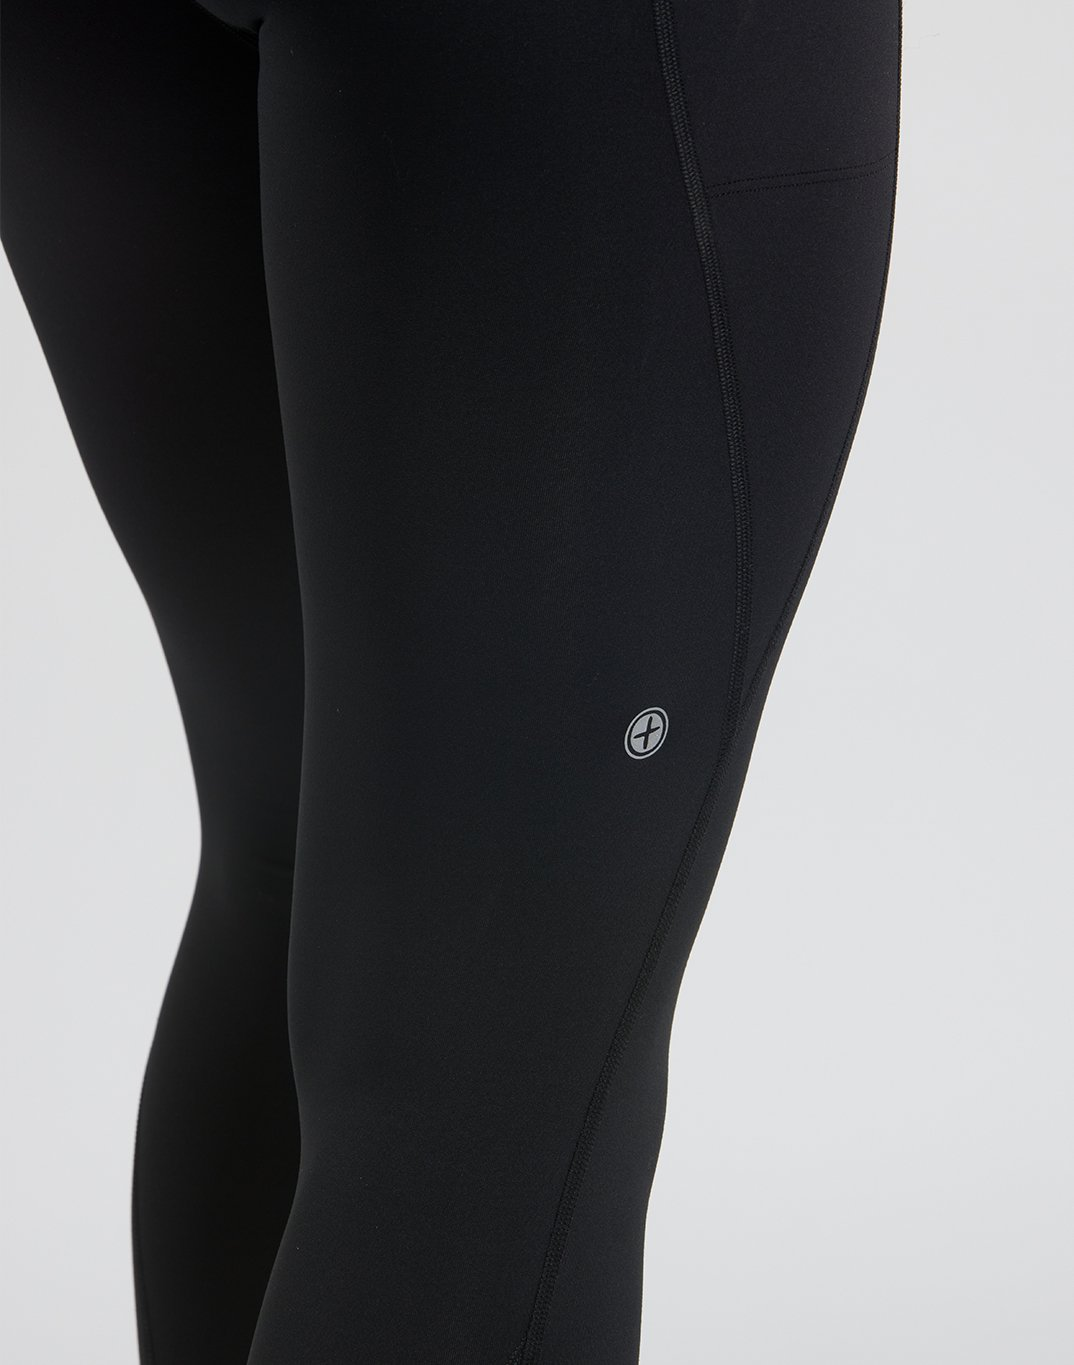 Gym Plus Coffee Leggings Womens All-In Legging in black Designed in Ireland